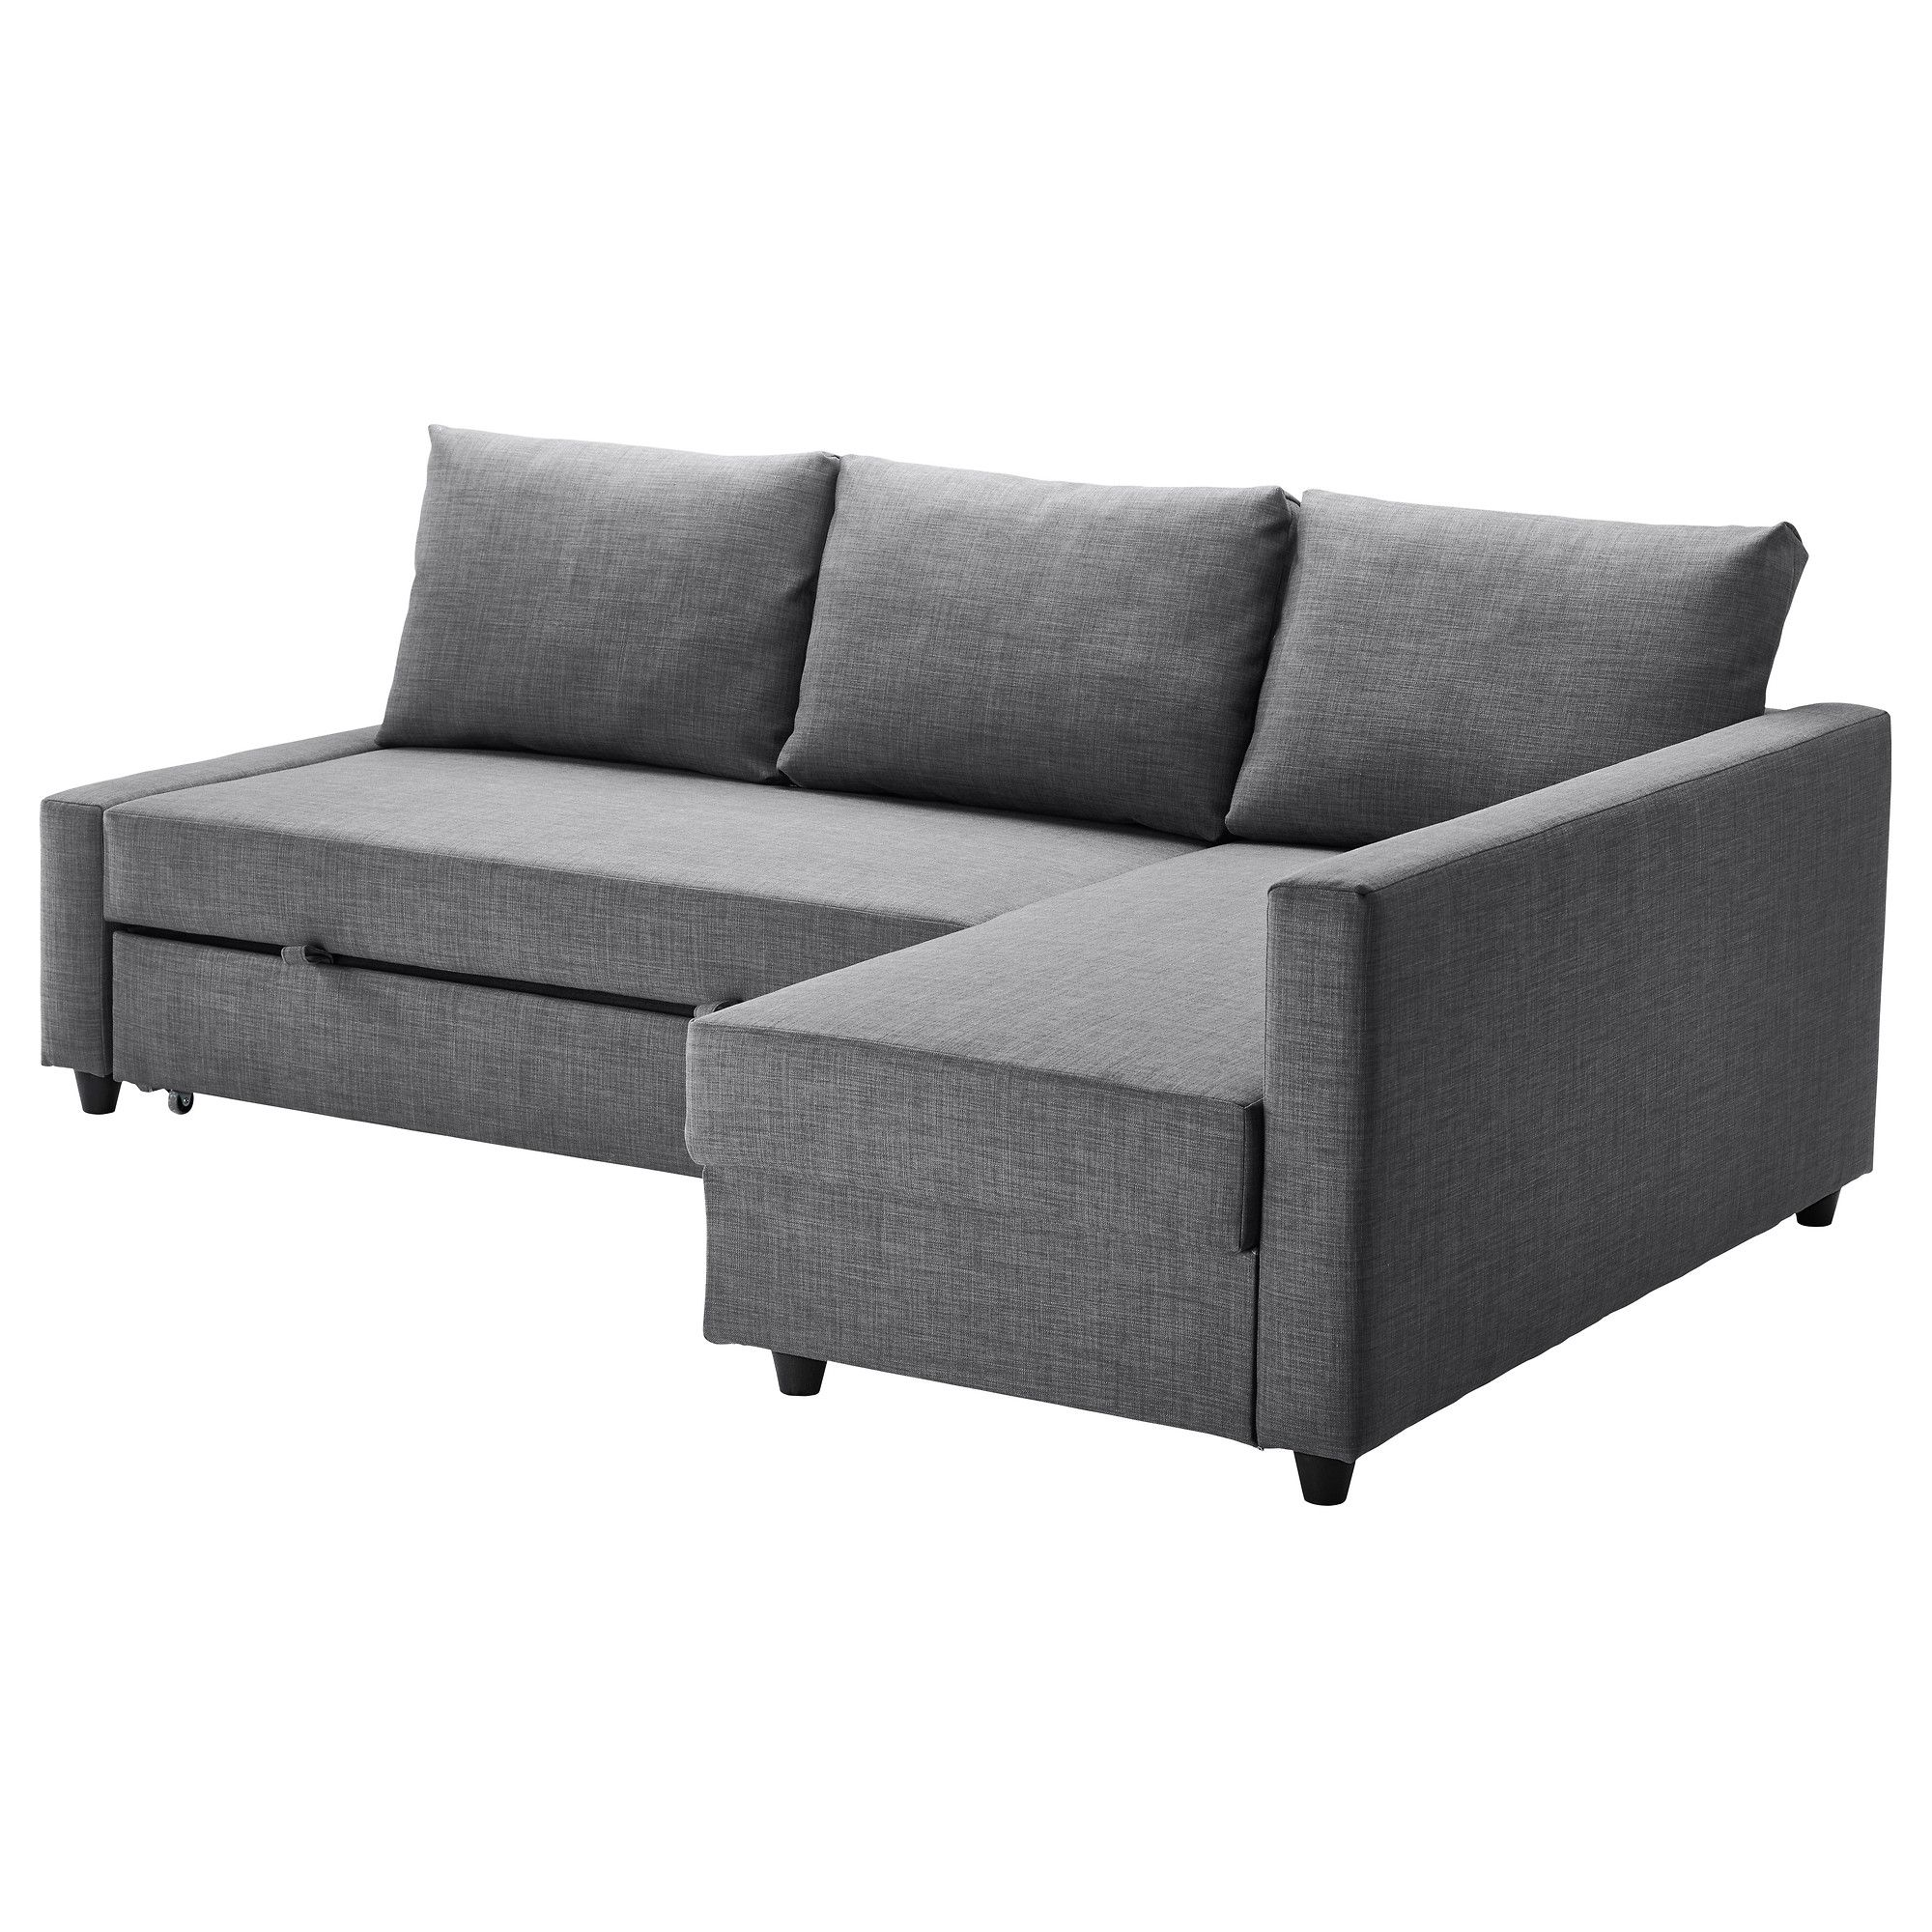 Eckbettsofa ikea  IKEA - FRIHETEN, Sofa bed with chaise, Skiftebo dark gray, , , You ...